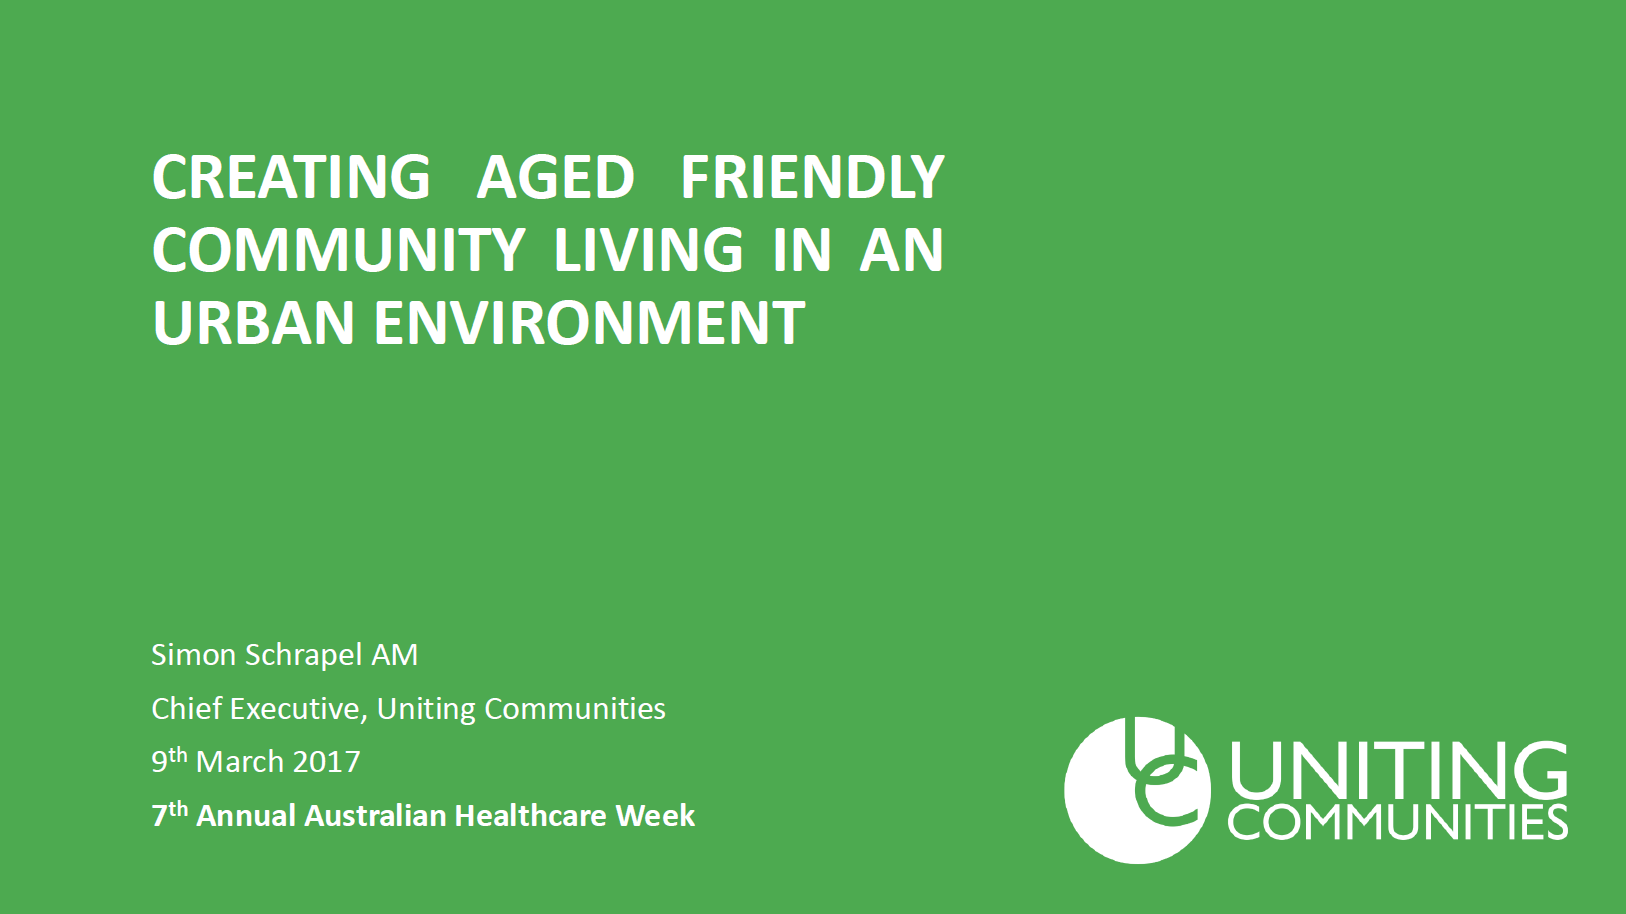 Creating Aged Friendly Community Living in an Urban Environment